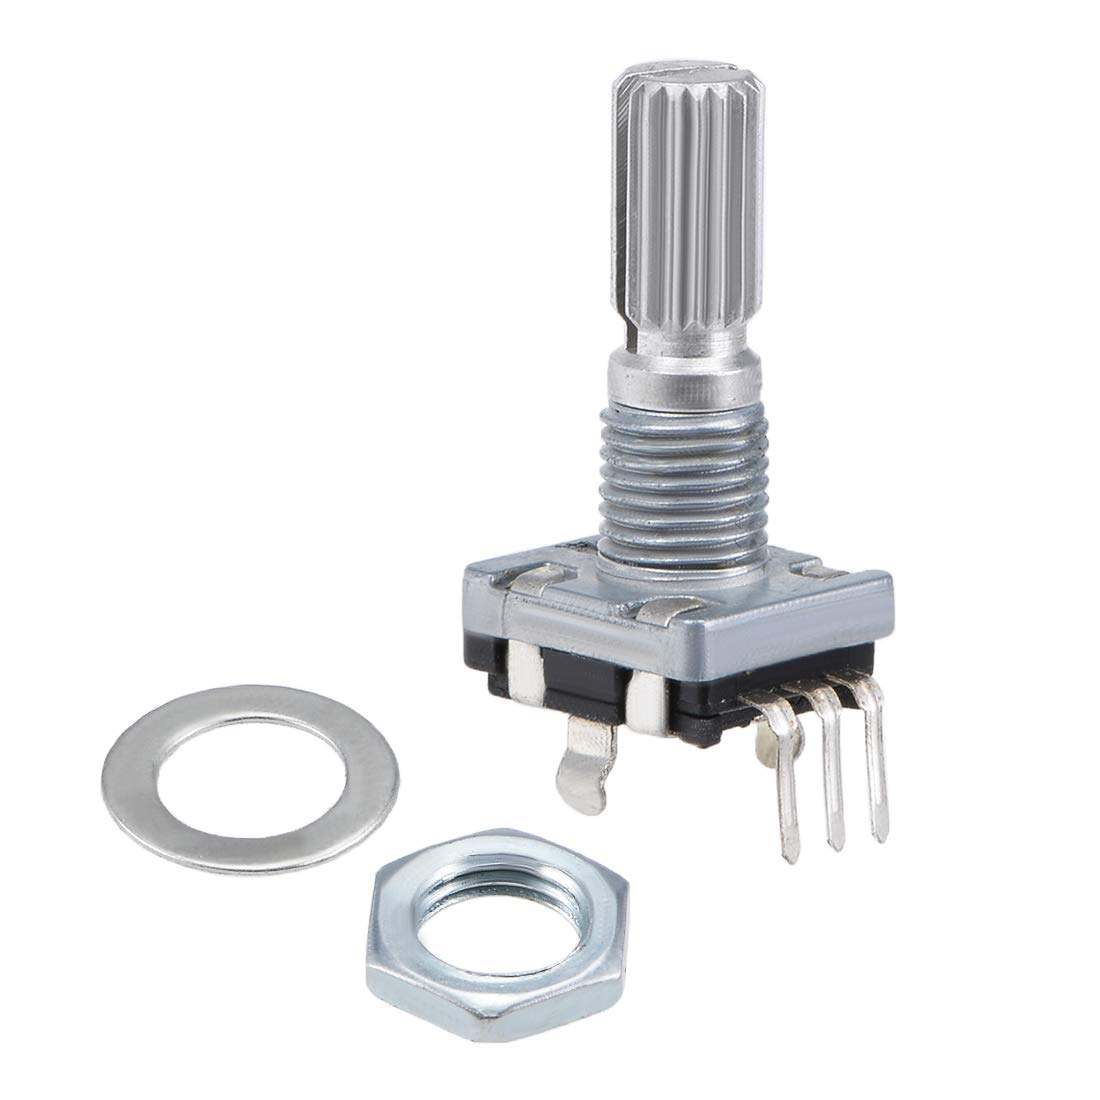 sourcing map 360 Degree Rotary Encoder Code Switch Digital Potentiometer EC11 5 Pins 14mm Shaft 10pcs